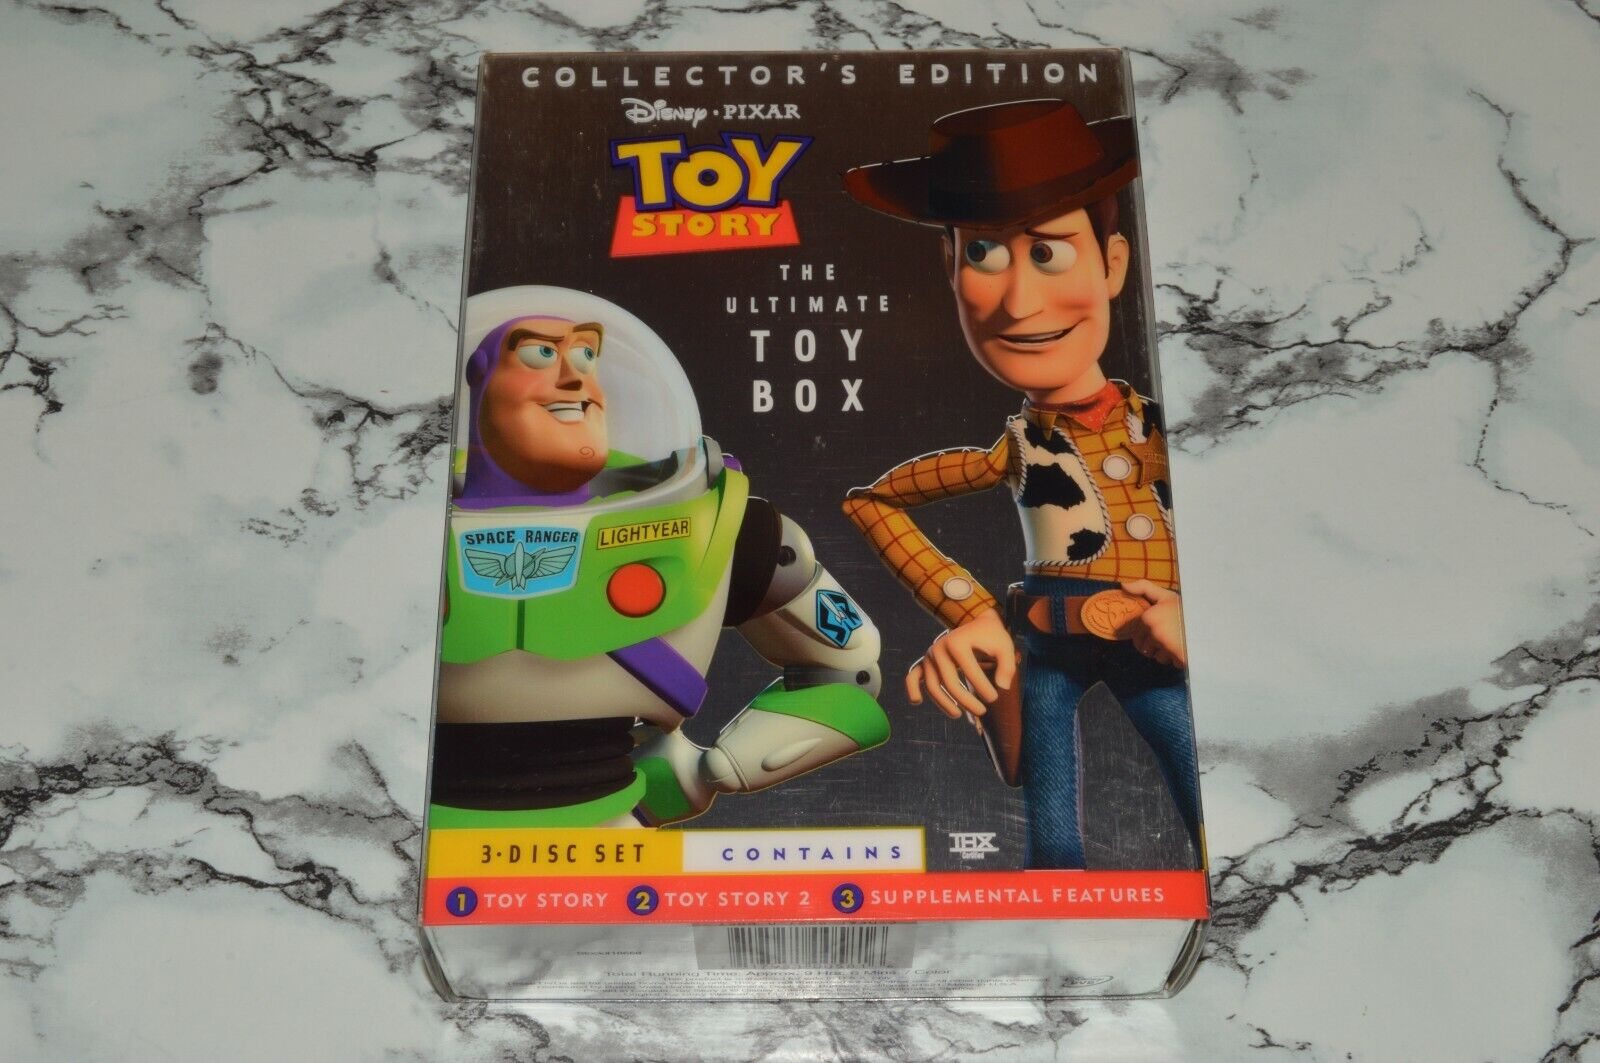 Toy Story 1 2 - The Ultimate Toy Box - Collector s Edition DVD -- Disney - $12.68